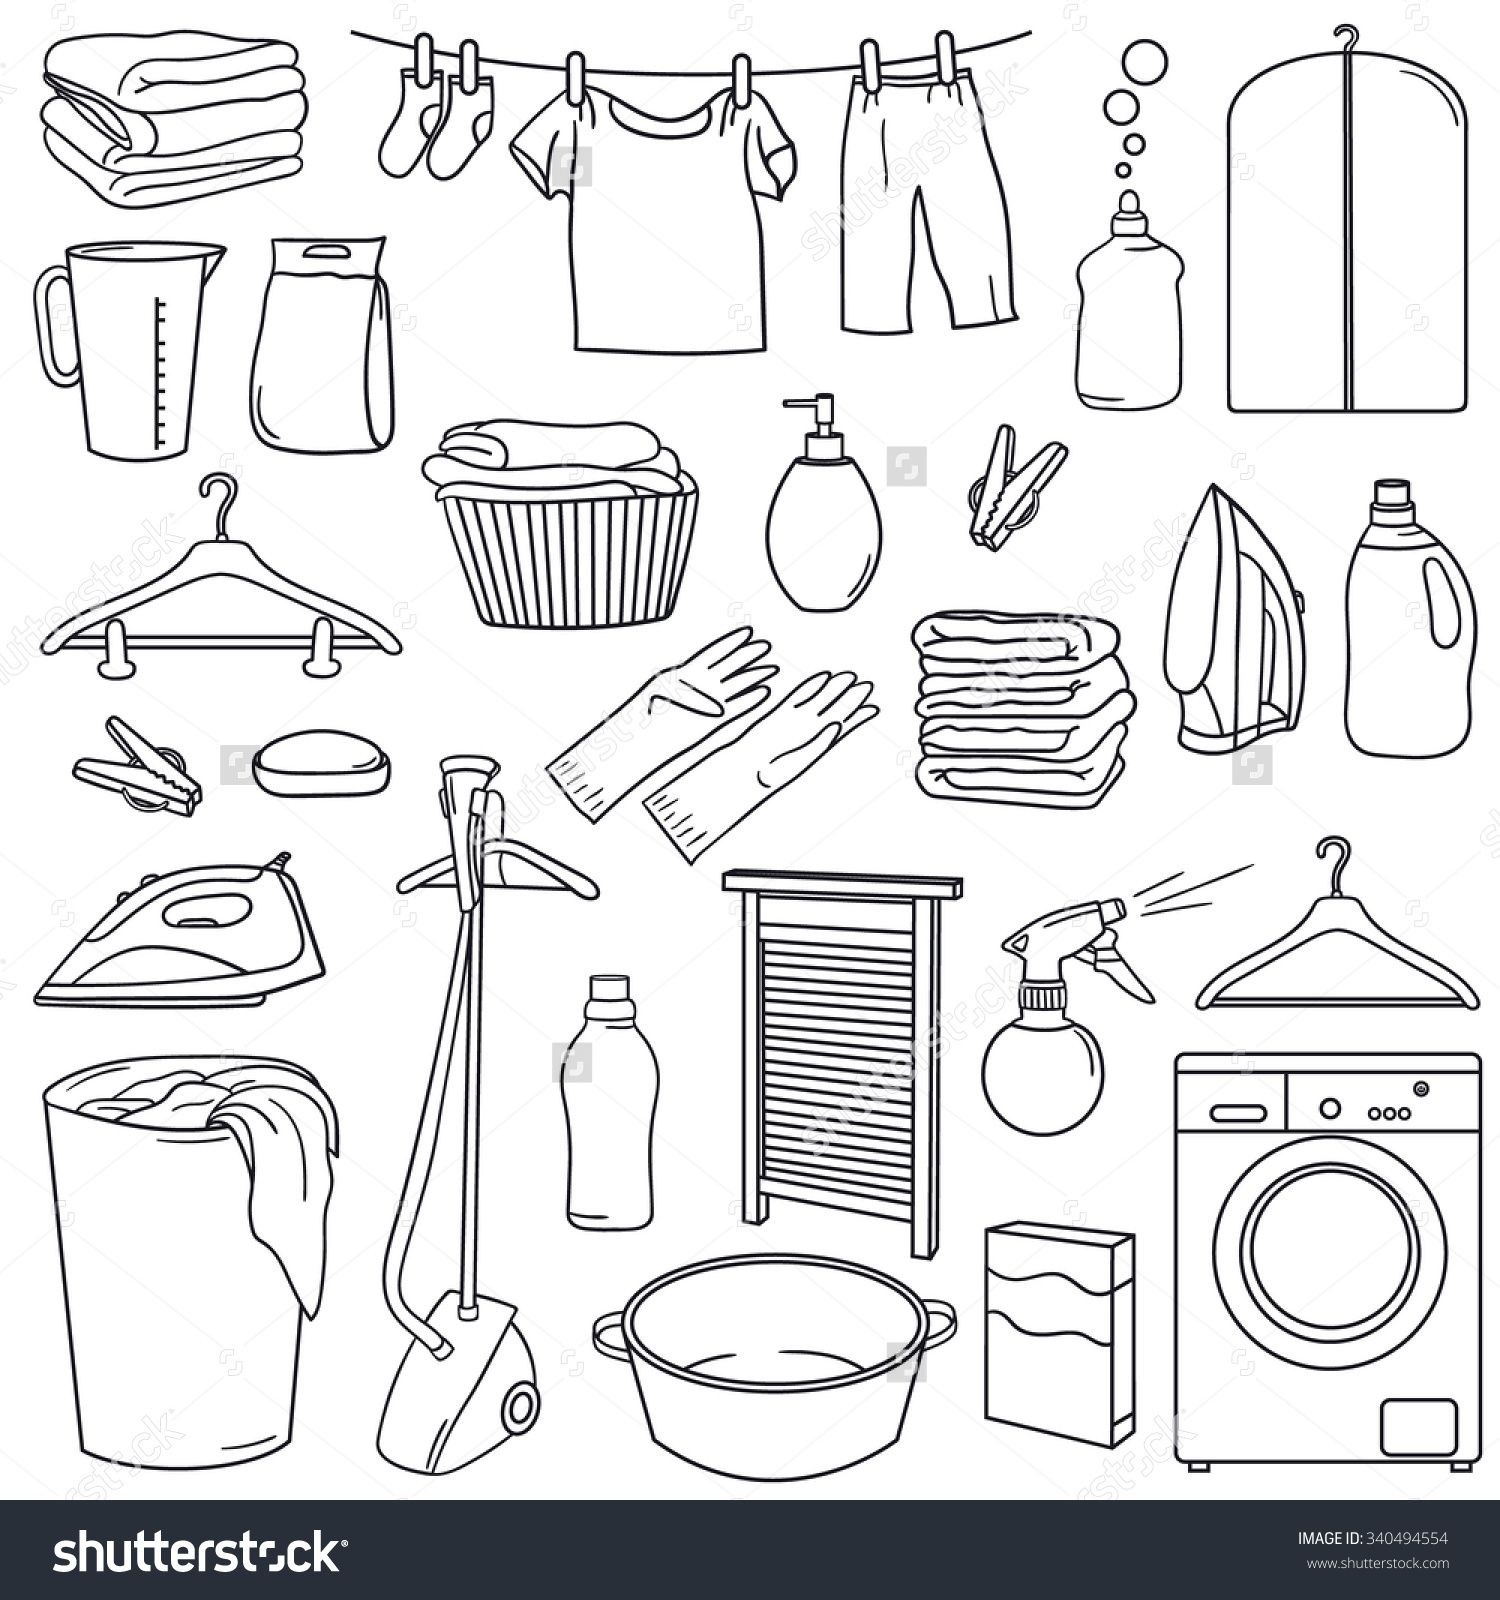 Image Result For Washing Clothes Doodle Laundry Icons Sketch Notes Cute Drawings